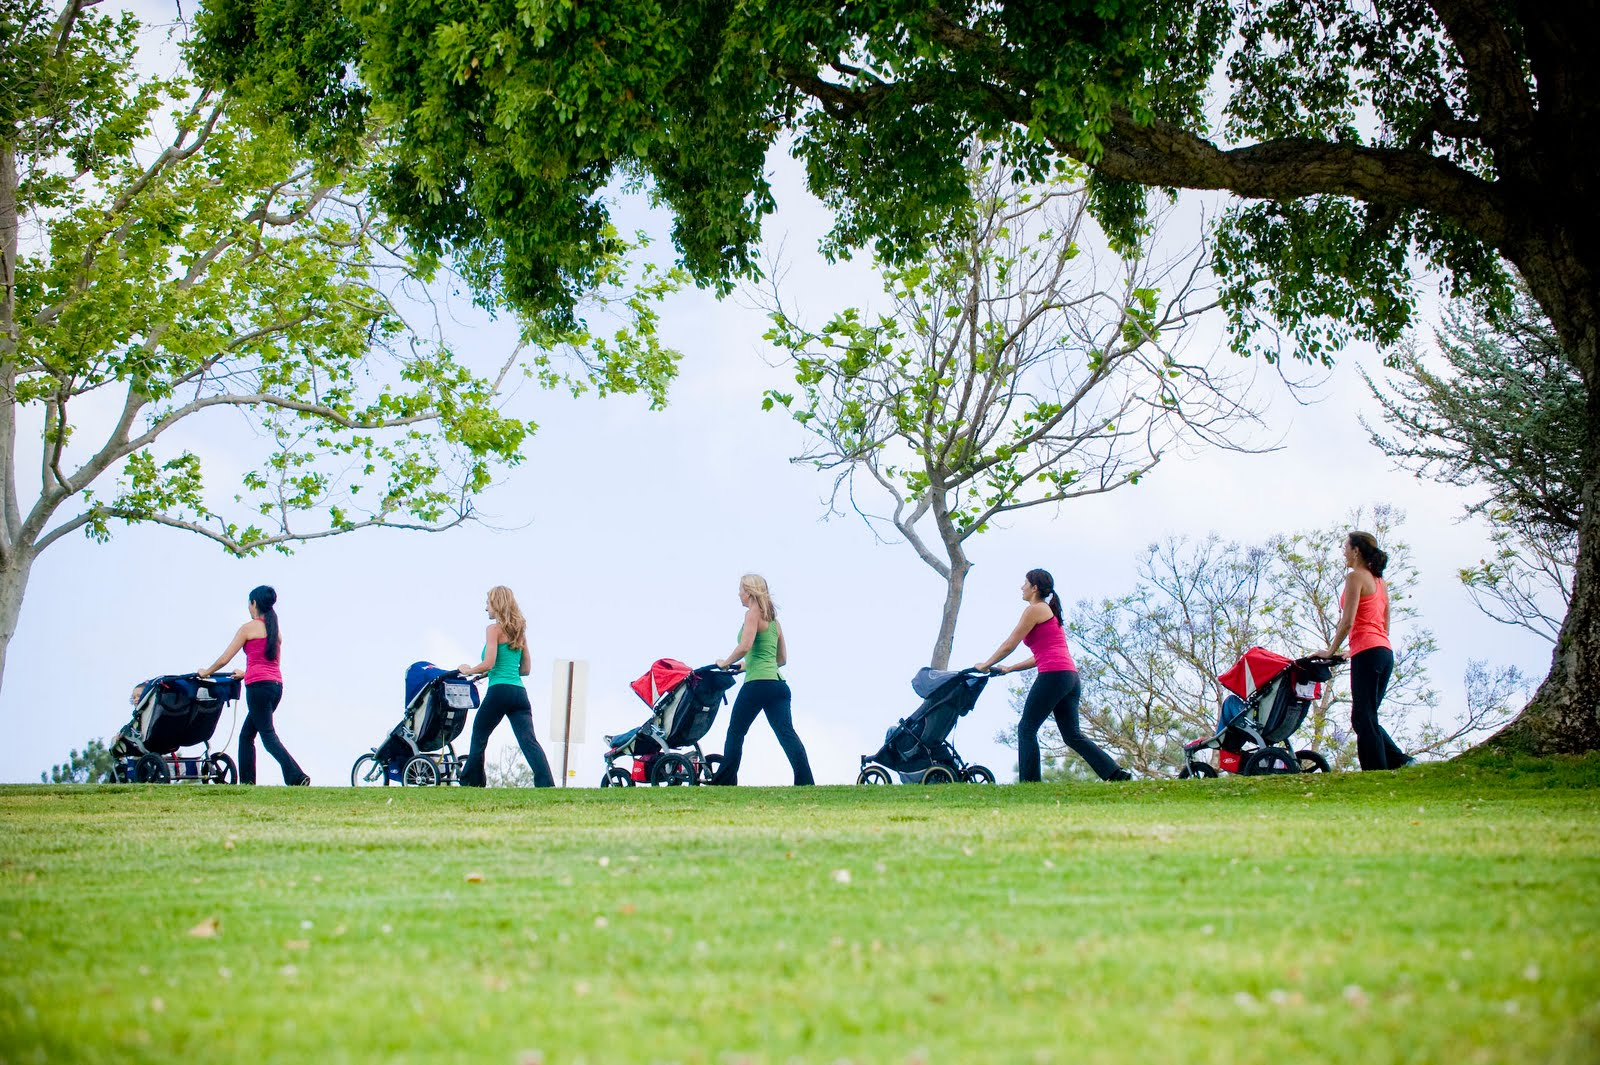 An innovative local fitness program offers mom and baby an opportunity to exercise together.